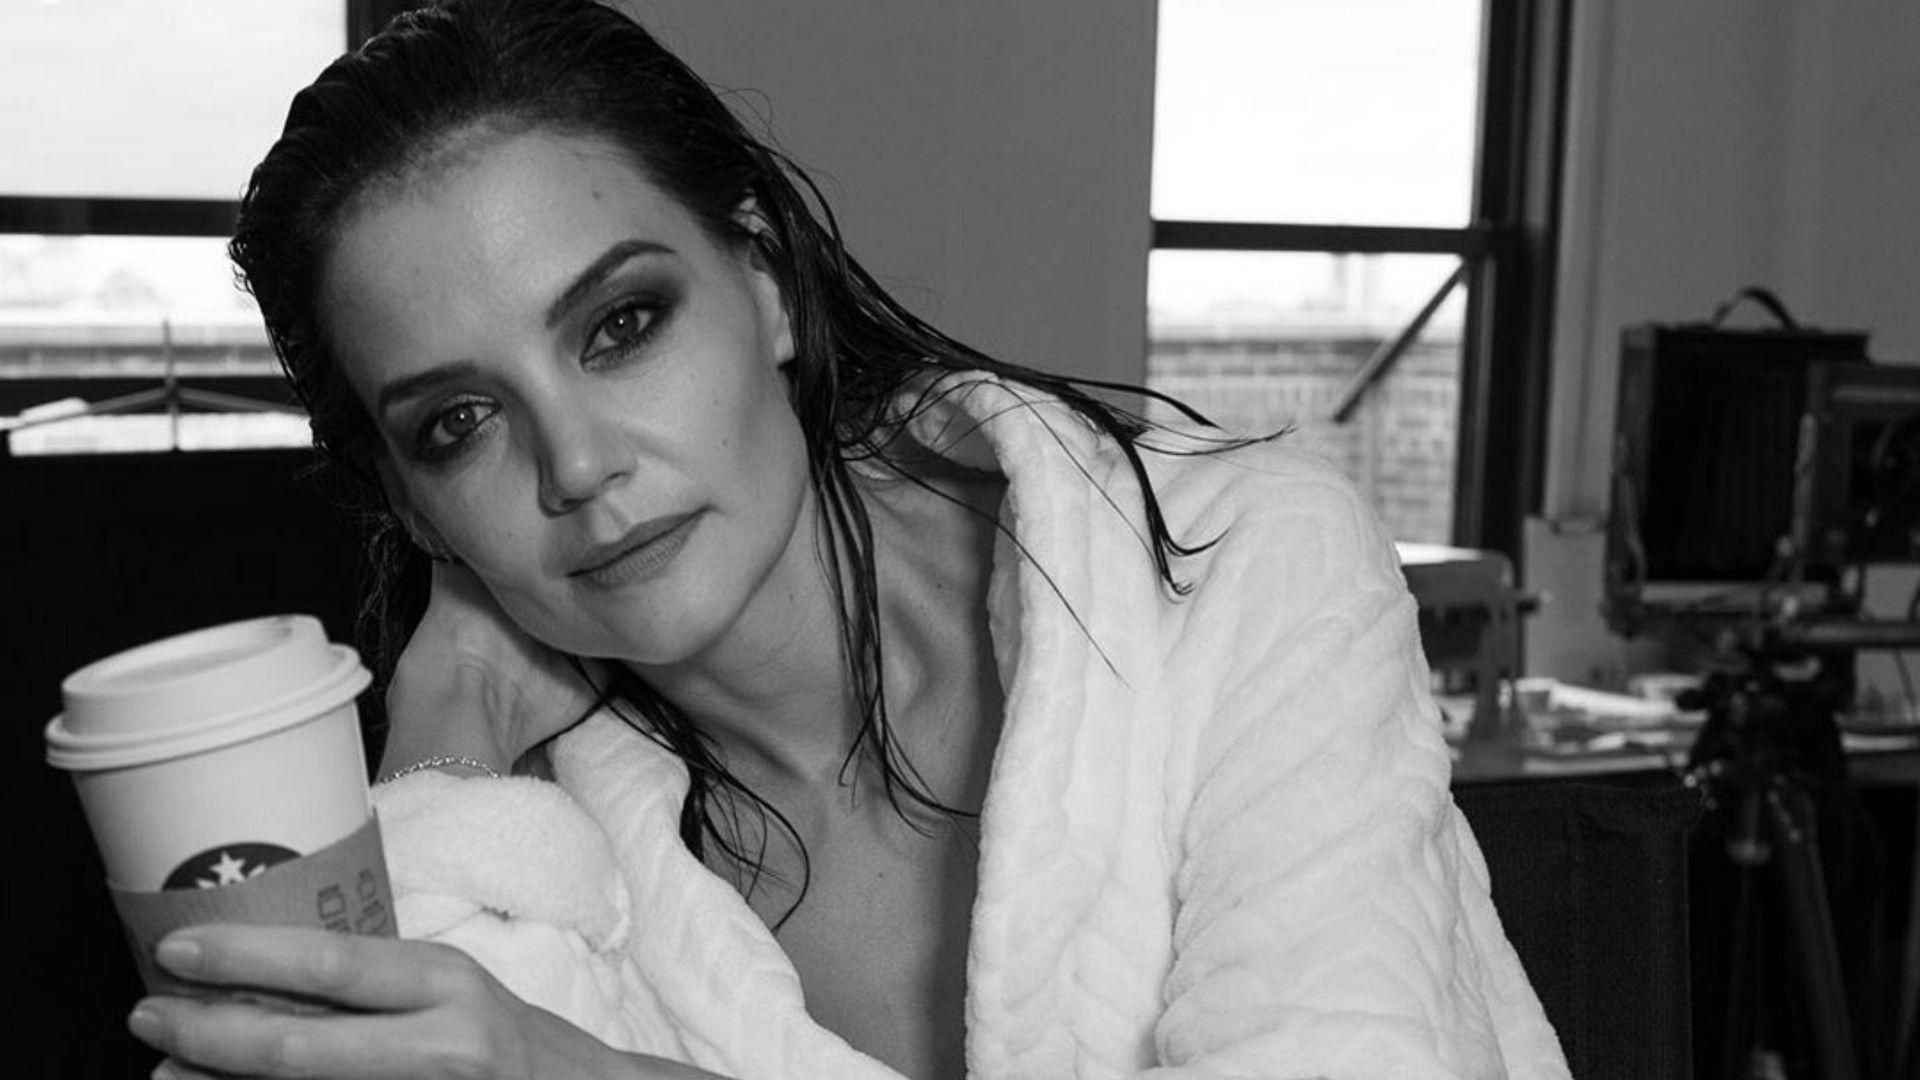 Fans Praise Katie Holmes' Unedited Stretch Marks After She Poses In Bra And Blazer